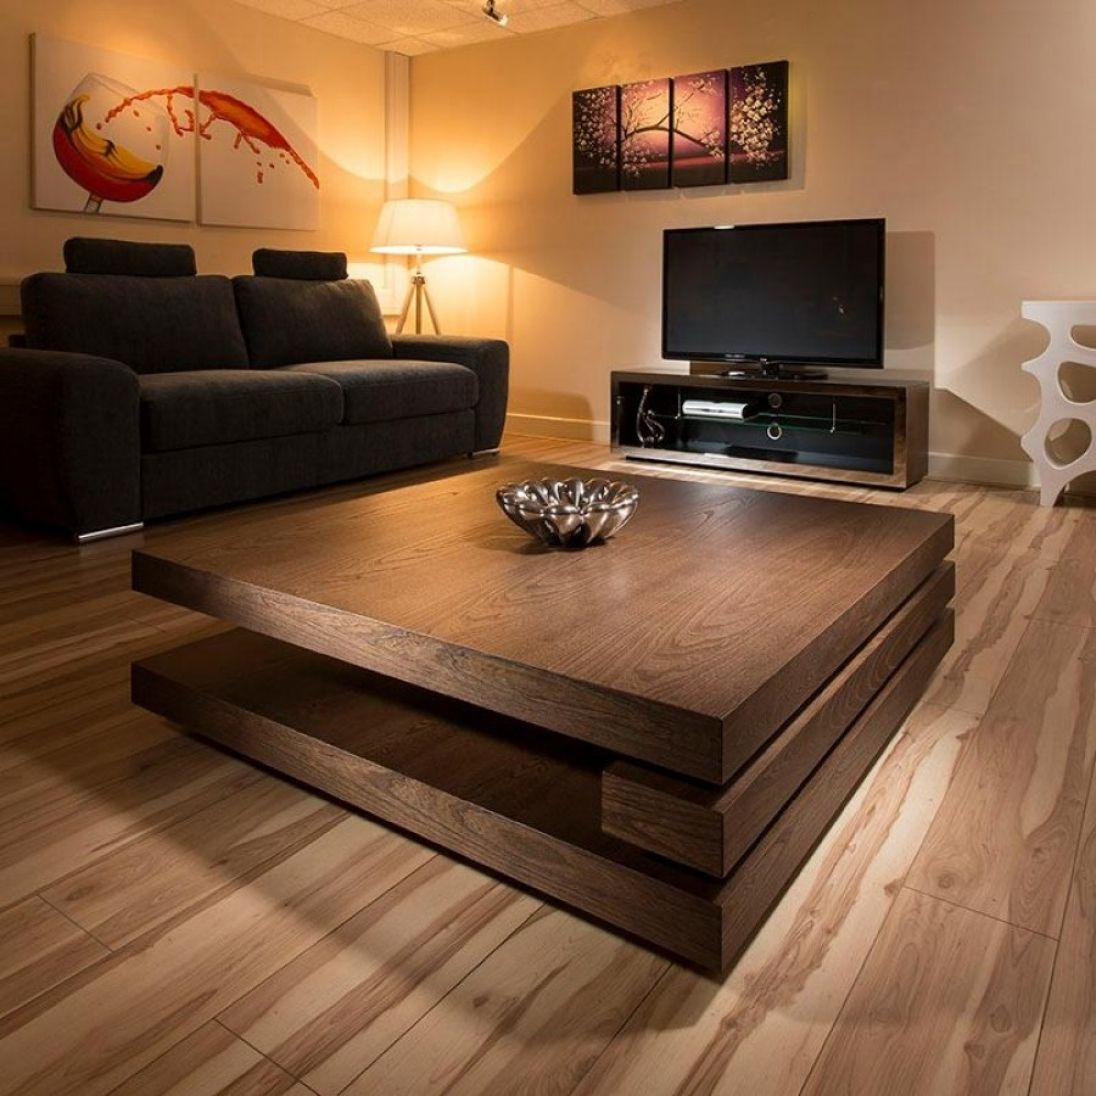 12 First Rate Interior Painting Colors Ideas Coffee Table Modern Square Coffee Table Large Square Coffee Table [ 1096 x 1096 Pixel ]